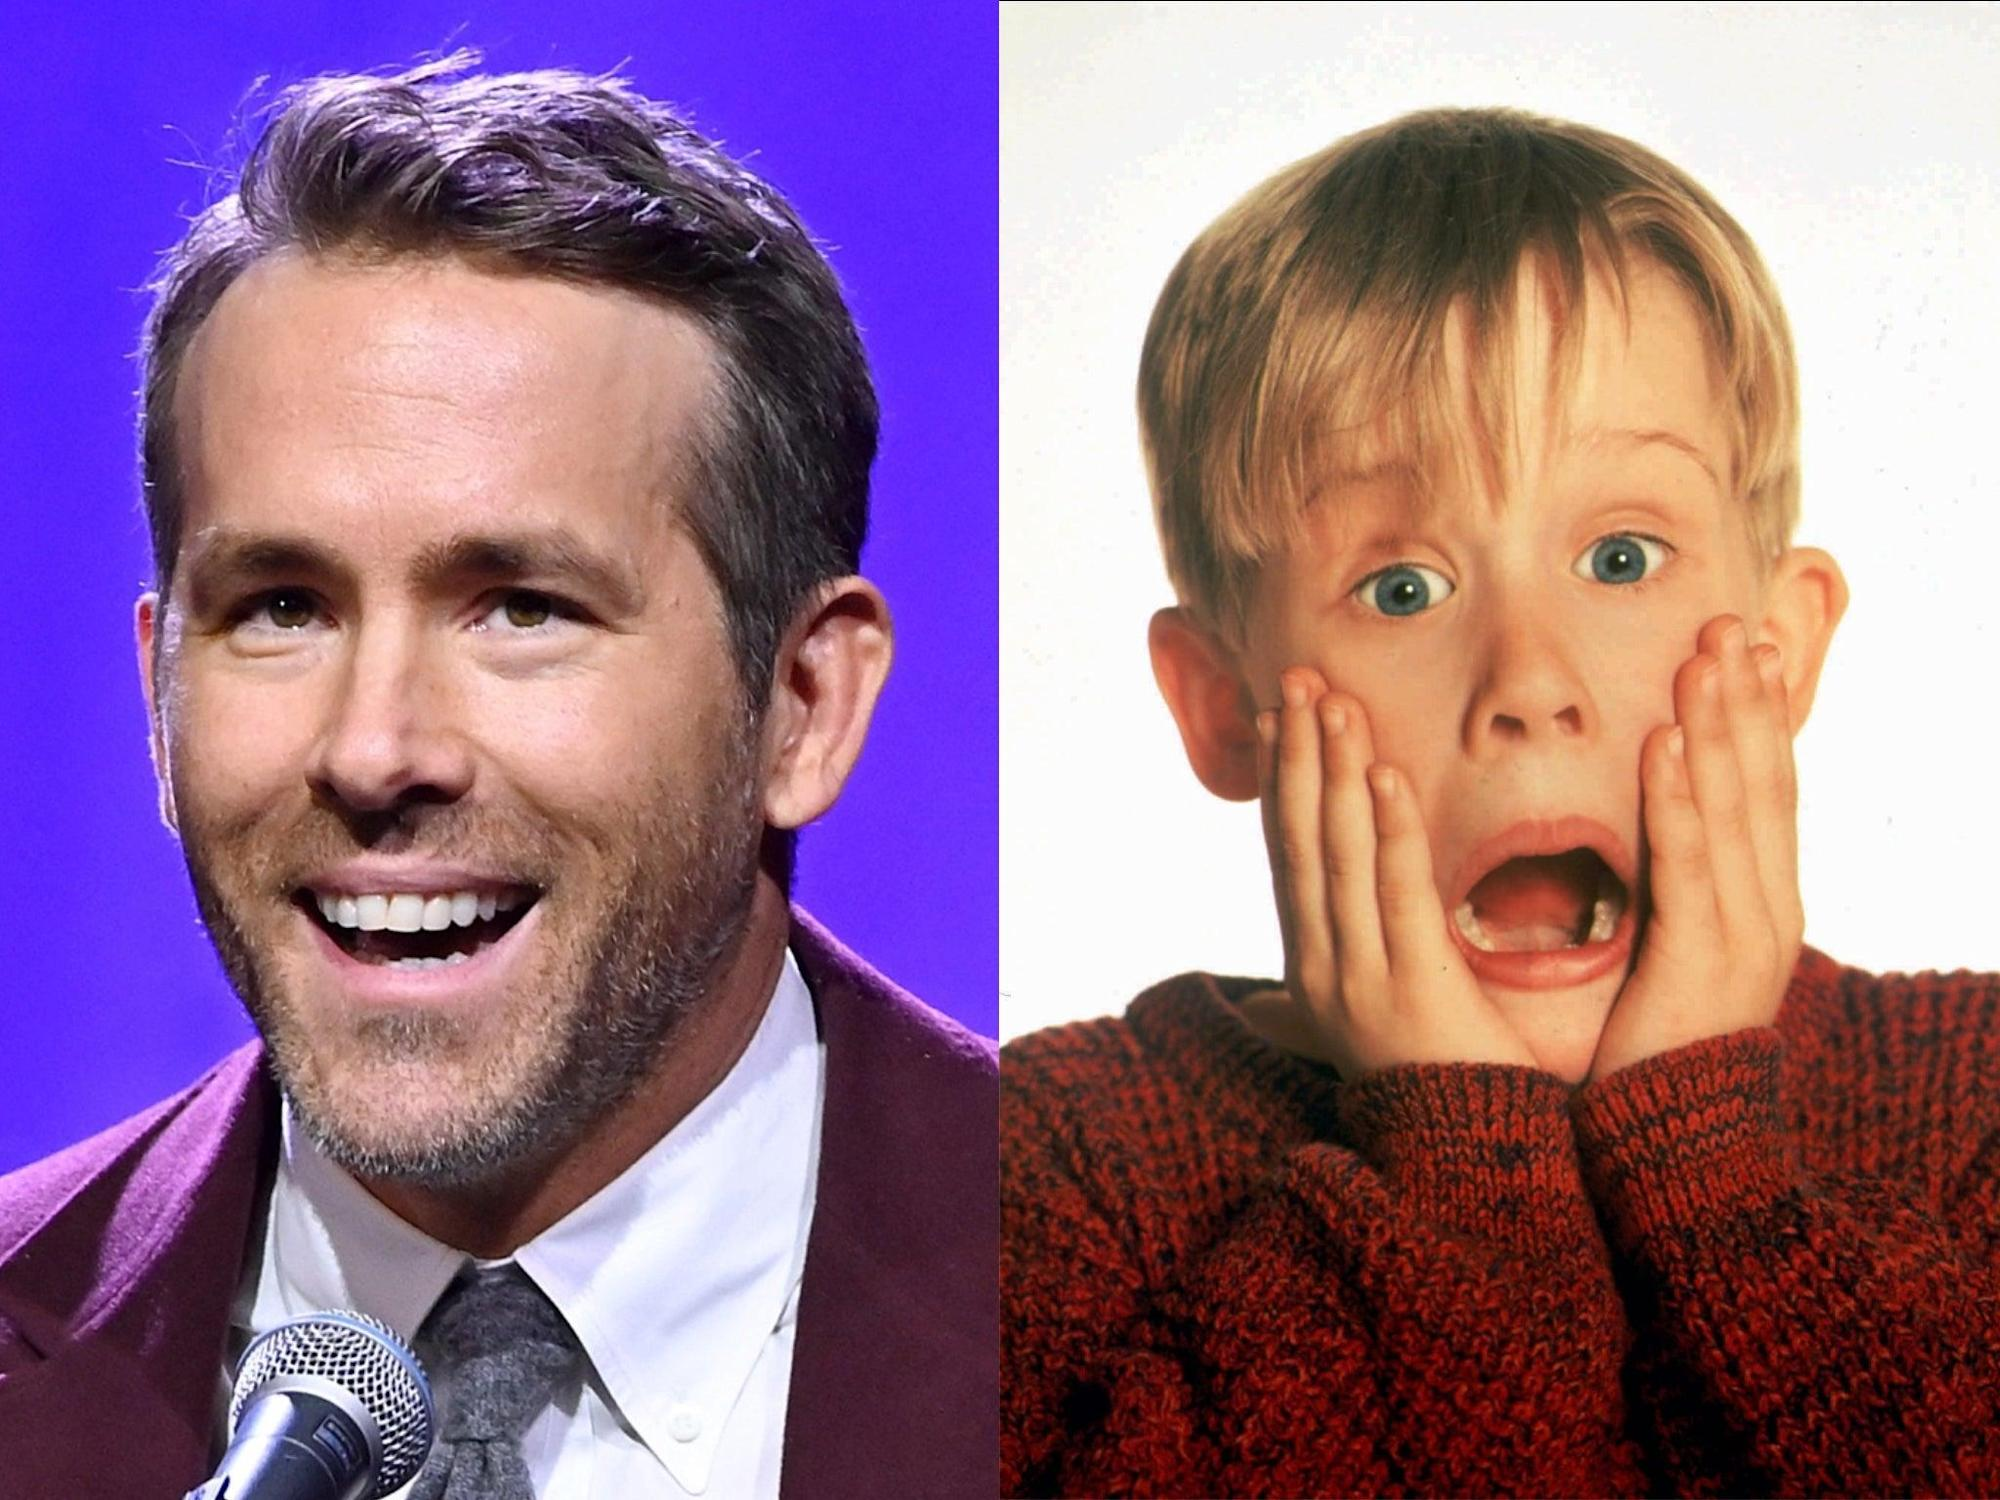 Ryan Reynolds's Home Alone reboot is 'an insult to the art of cinema', says original director Chris Columbus